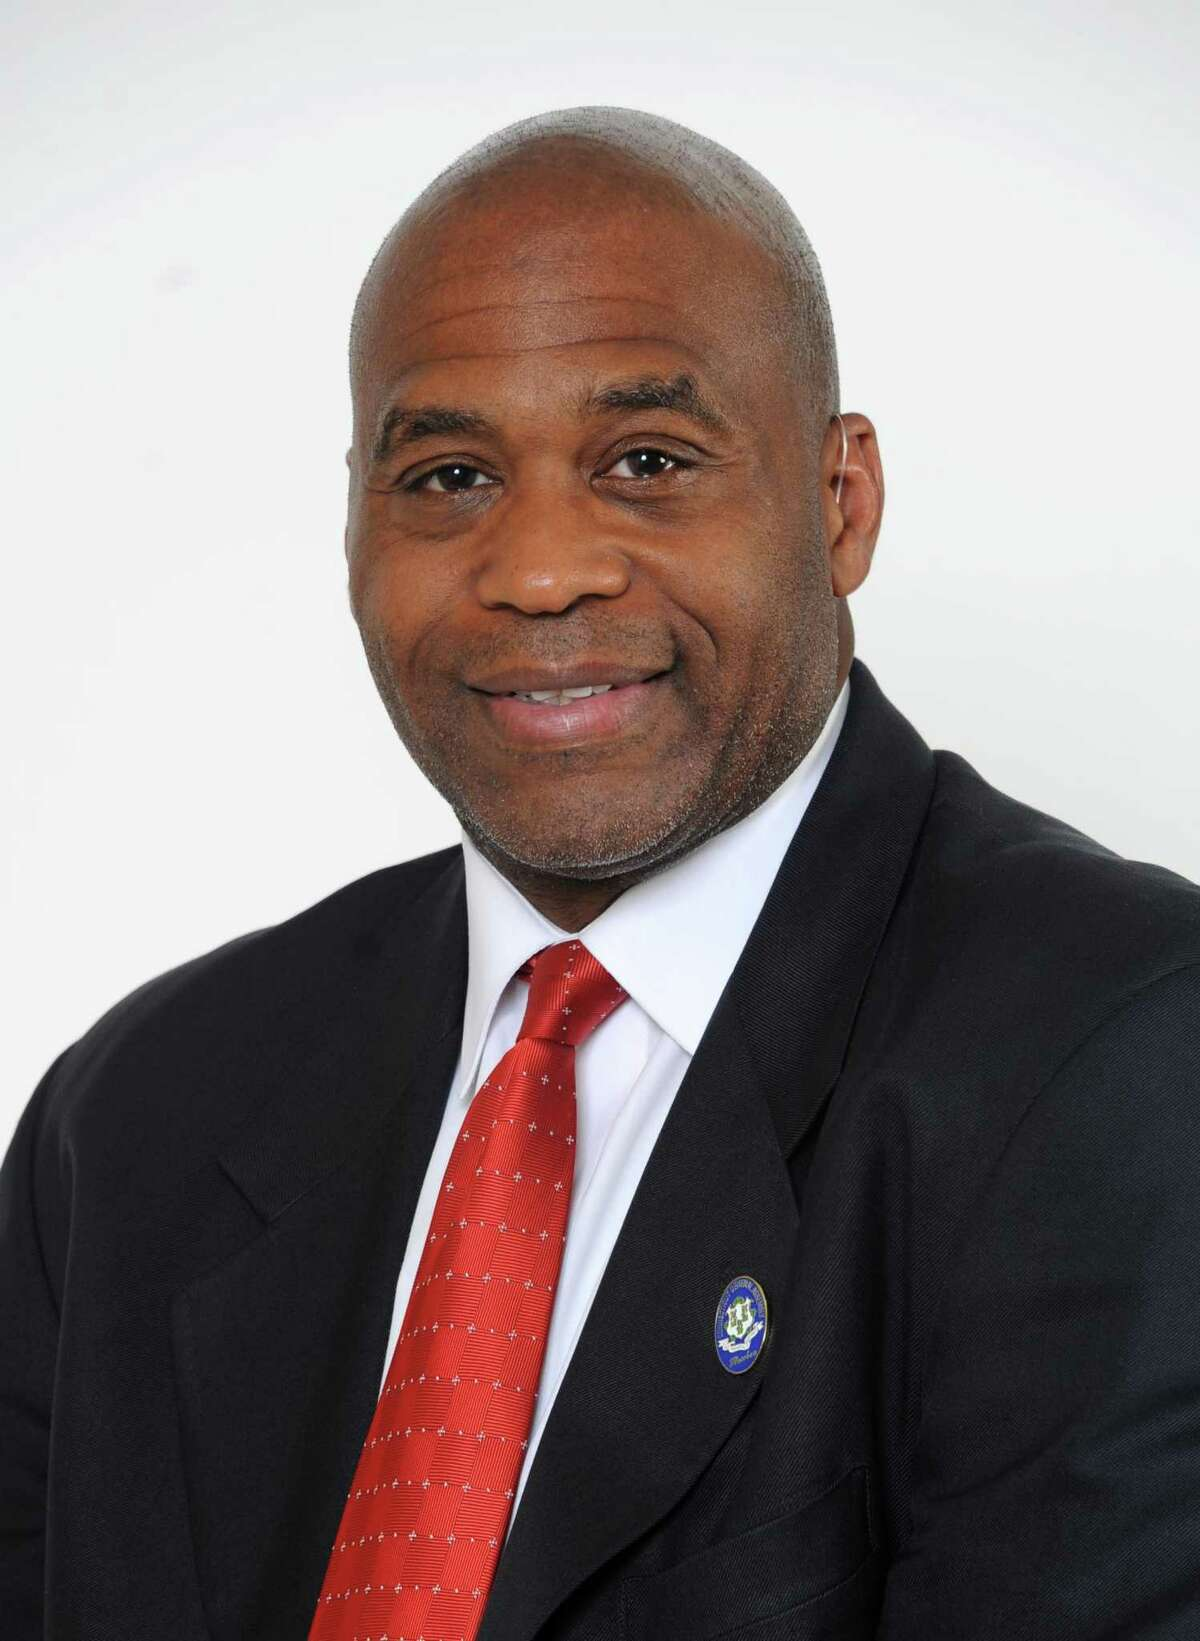 State Rep. Andre Baker, up for re-election on Nov. 3, 2020, for Bridgeport's state representative seat in District 124.